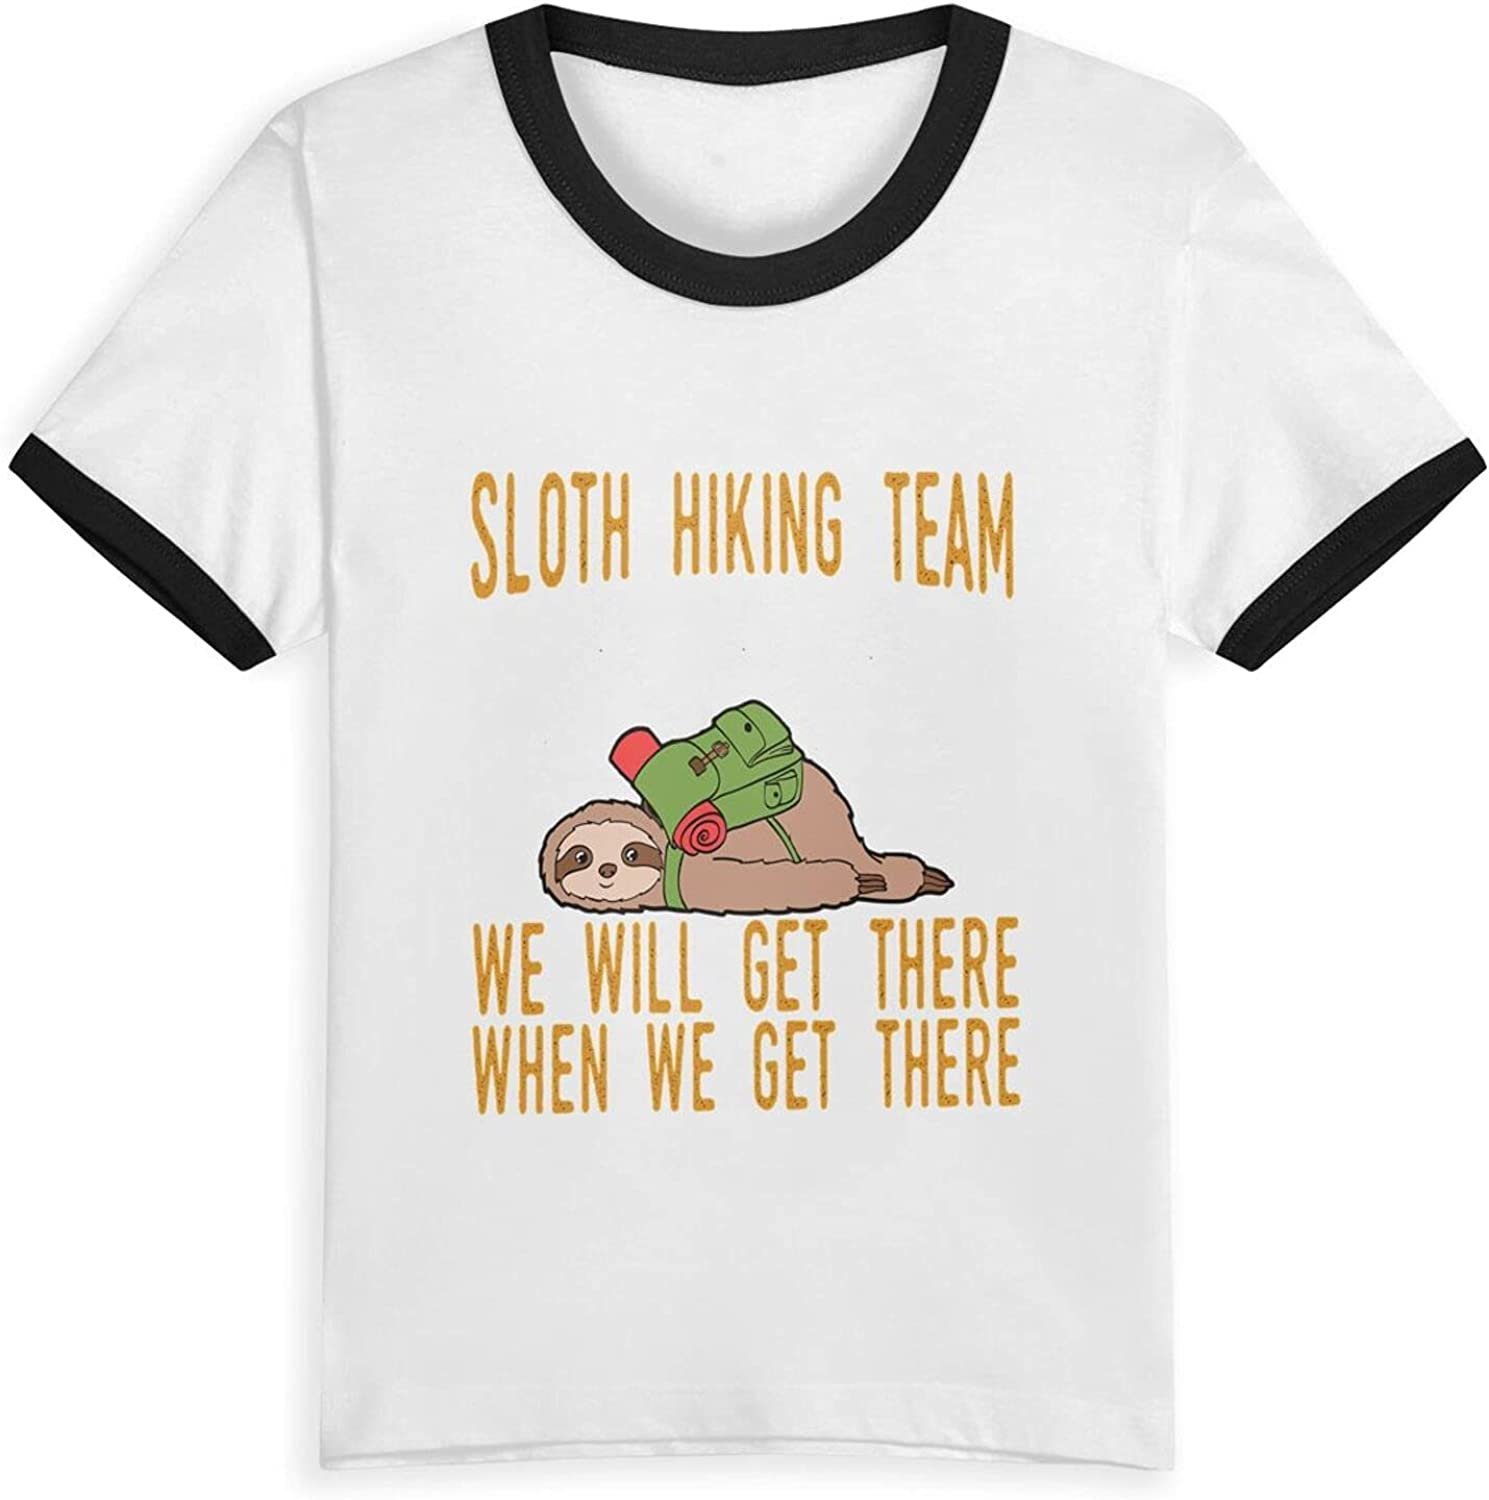 Sloth Hiking Team We Will Get There T-Shirts Novelty for Girls Tees with Cool Designs